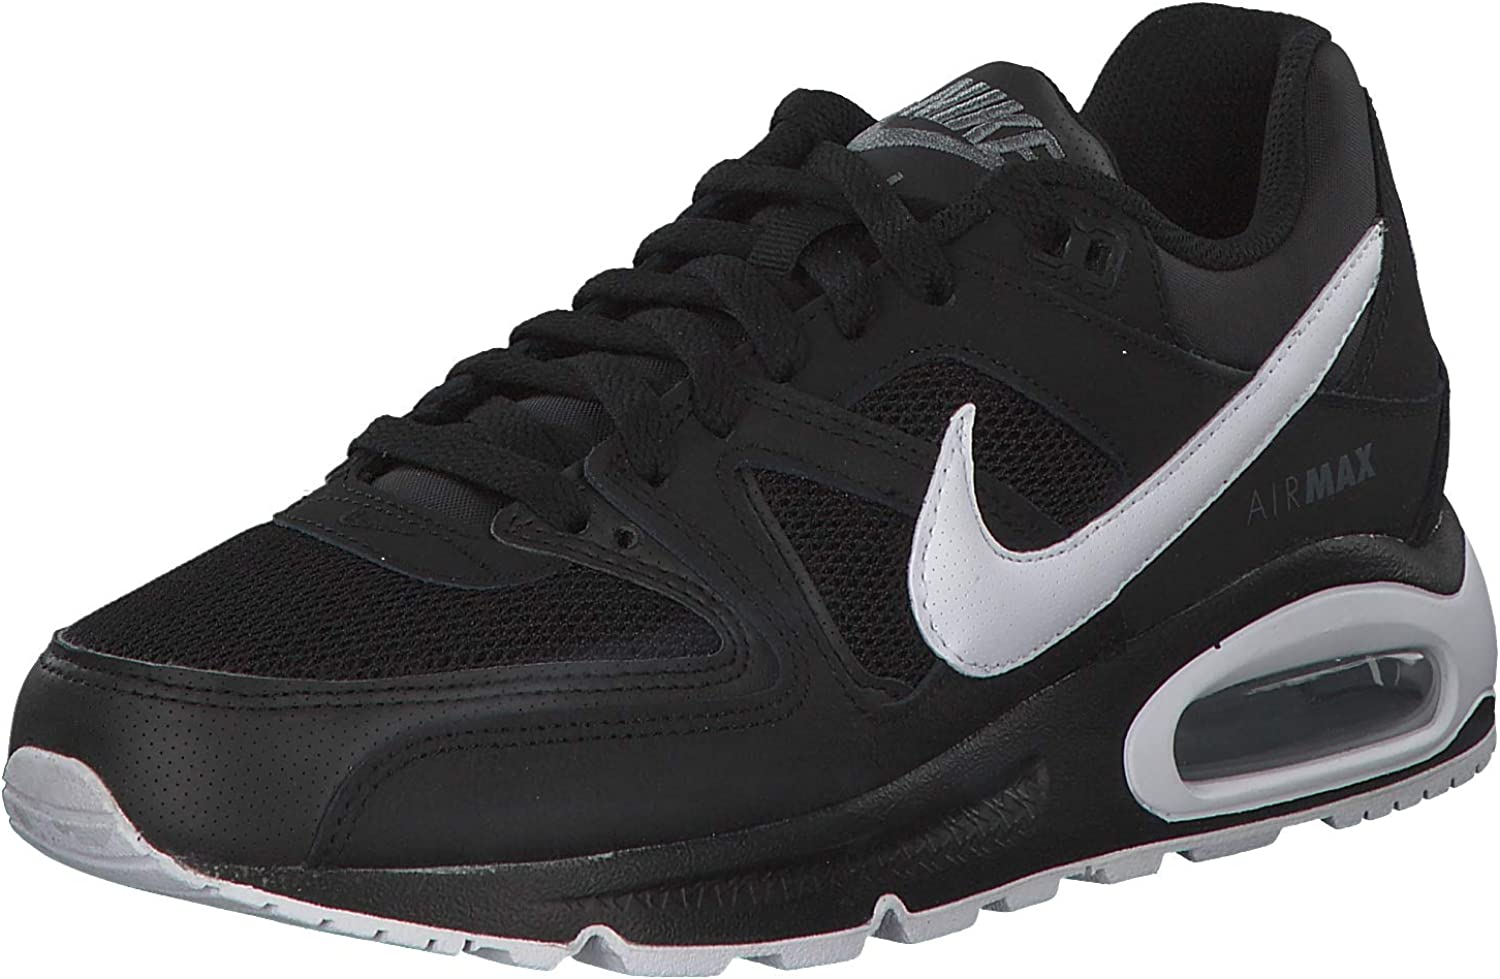 relé Señor Deformar  Amazon.com: Nike Air Max Command Sneaker black/white 629993-032, EU Shoe  Size:41 EU: Shoes